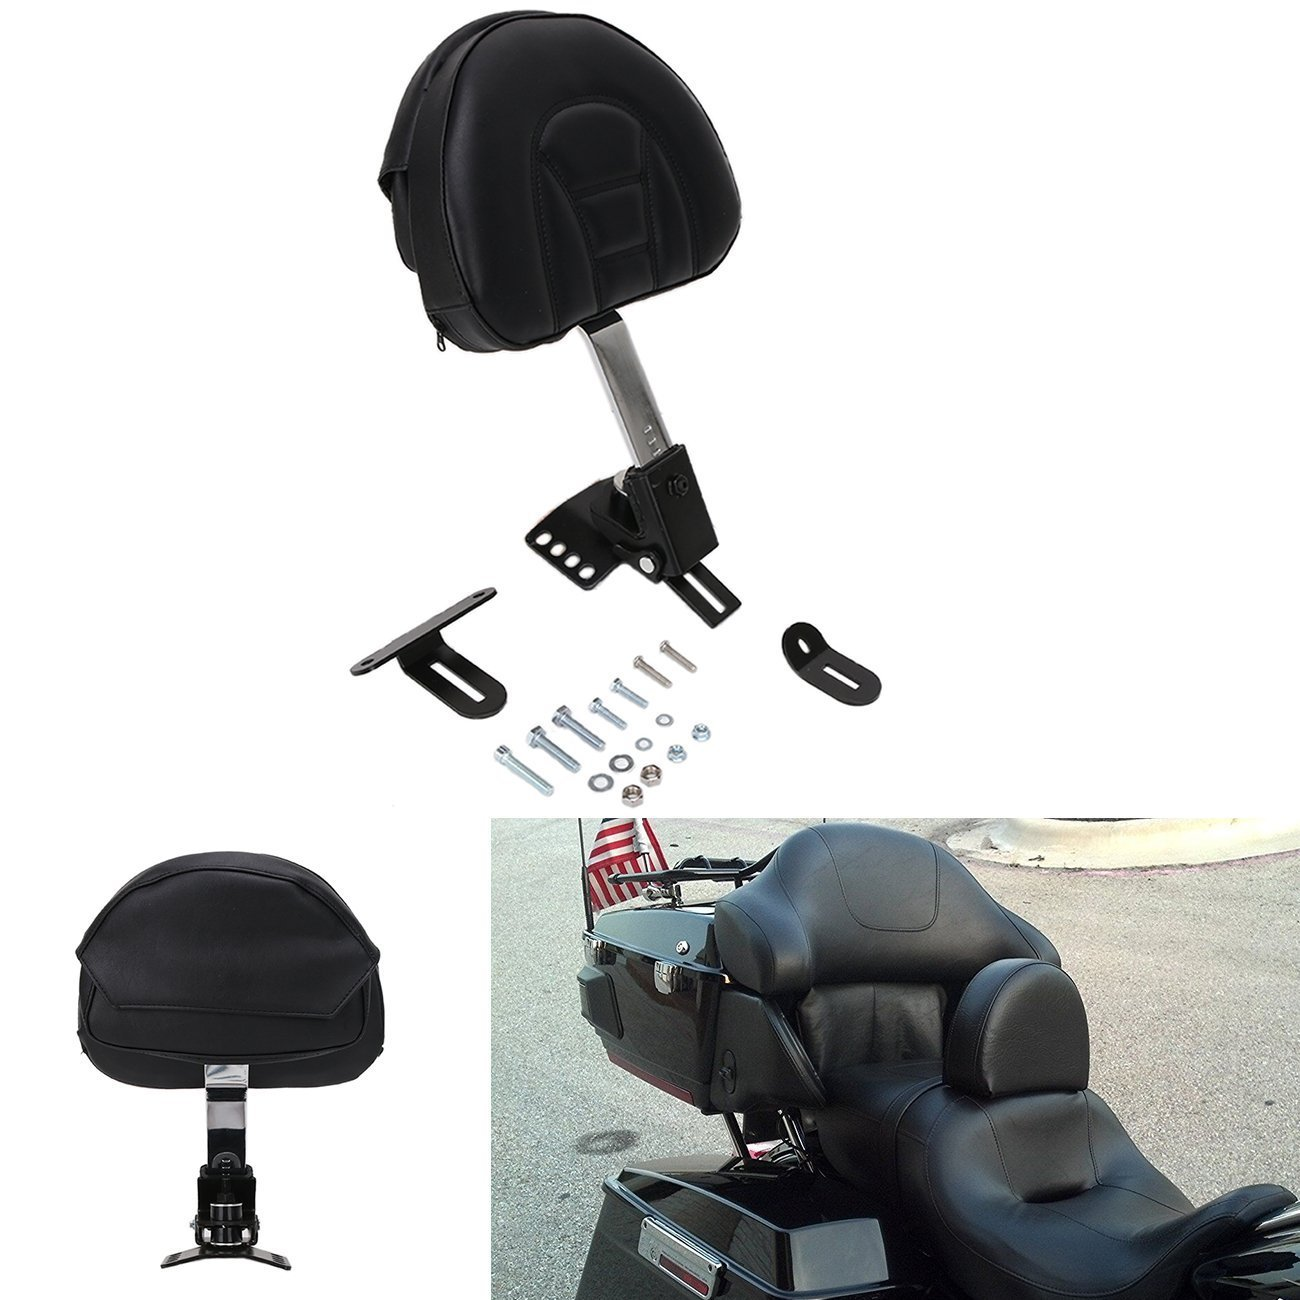 YC Motorcycle Adjustable Plug-In Rider Driver Backrest Leather Pad w/ Pocket Chrome For 1997-2017 Harley Davidson Touring Models ( Slotted Seat ) YAN CHEN